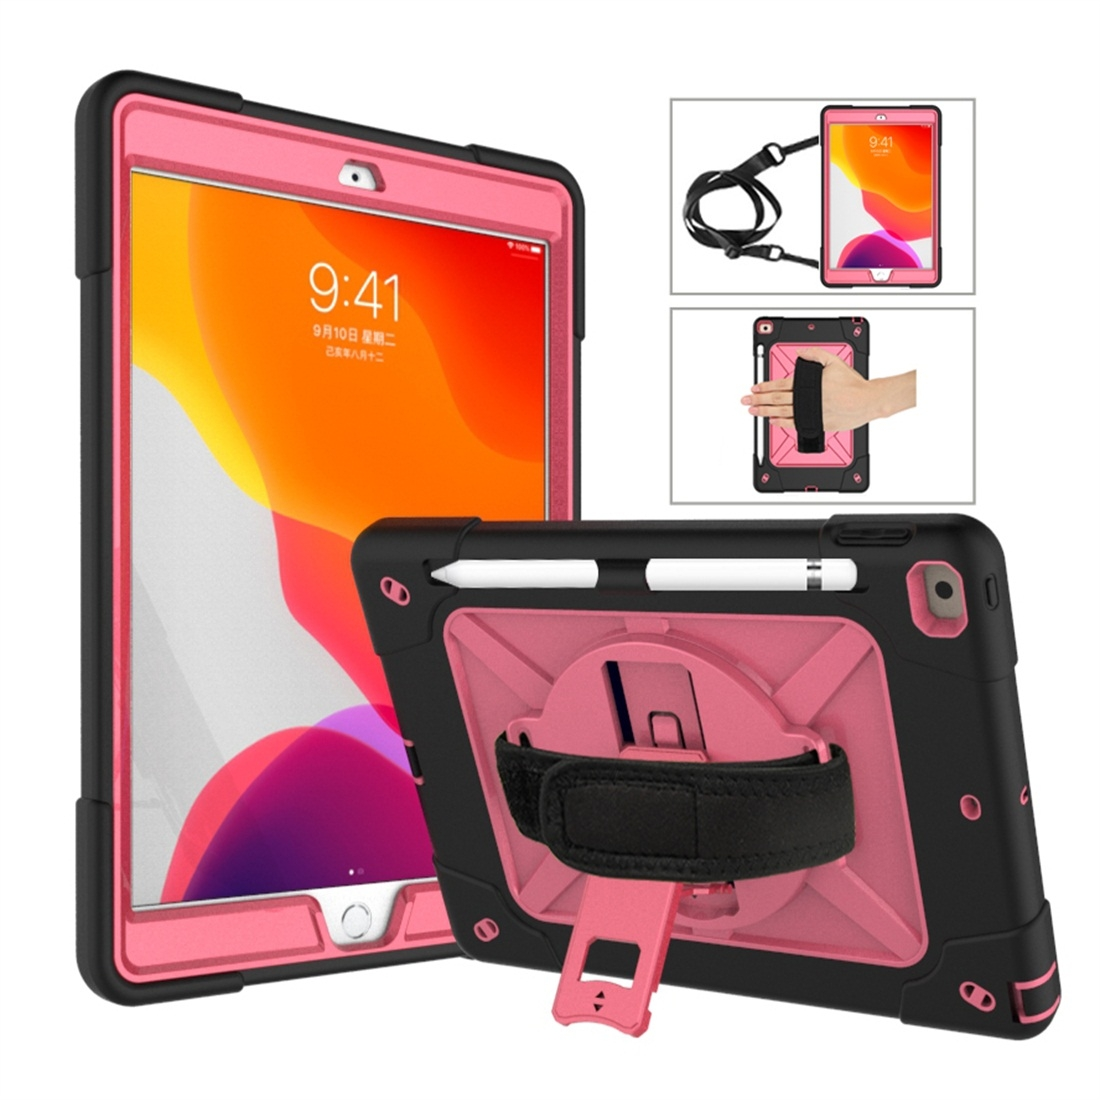 iPad 7th Generation Case (10.2 Inch) Contrasting Color Tough Durable Armor Case (Black/Rose Red)